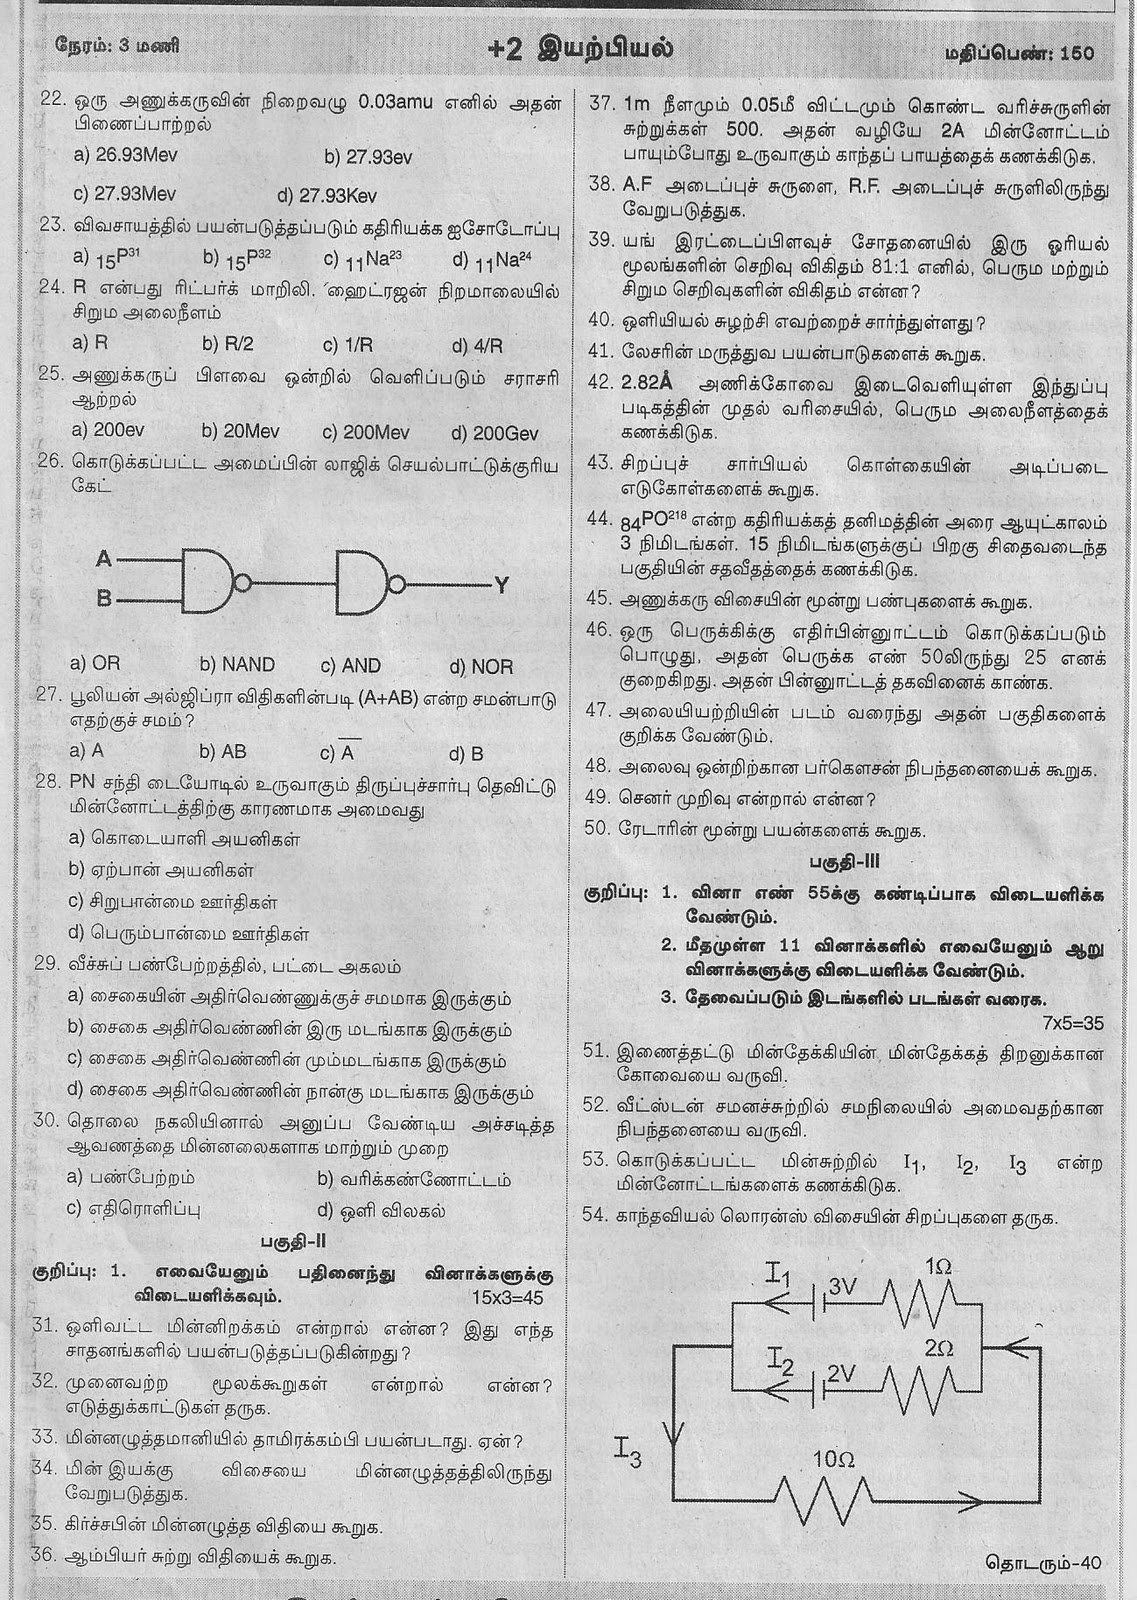 tn govt jobs: +2 model question paper for PHYSICS